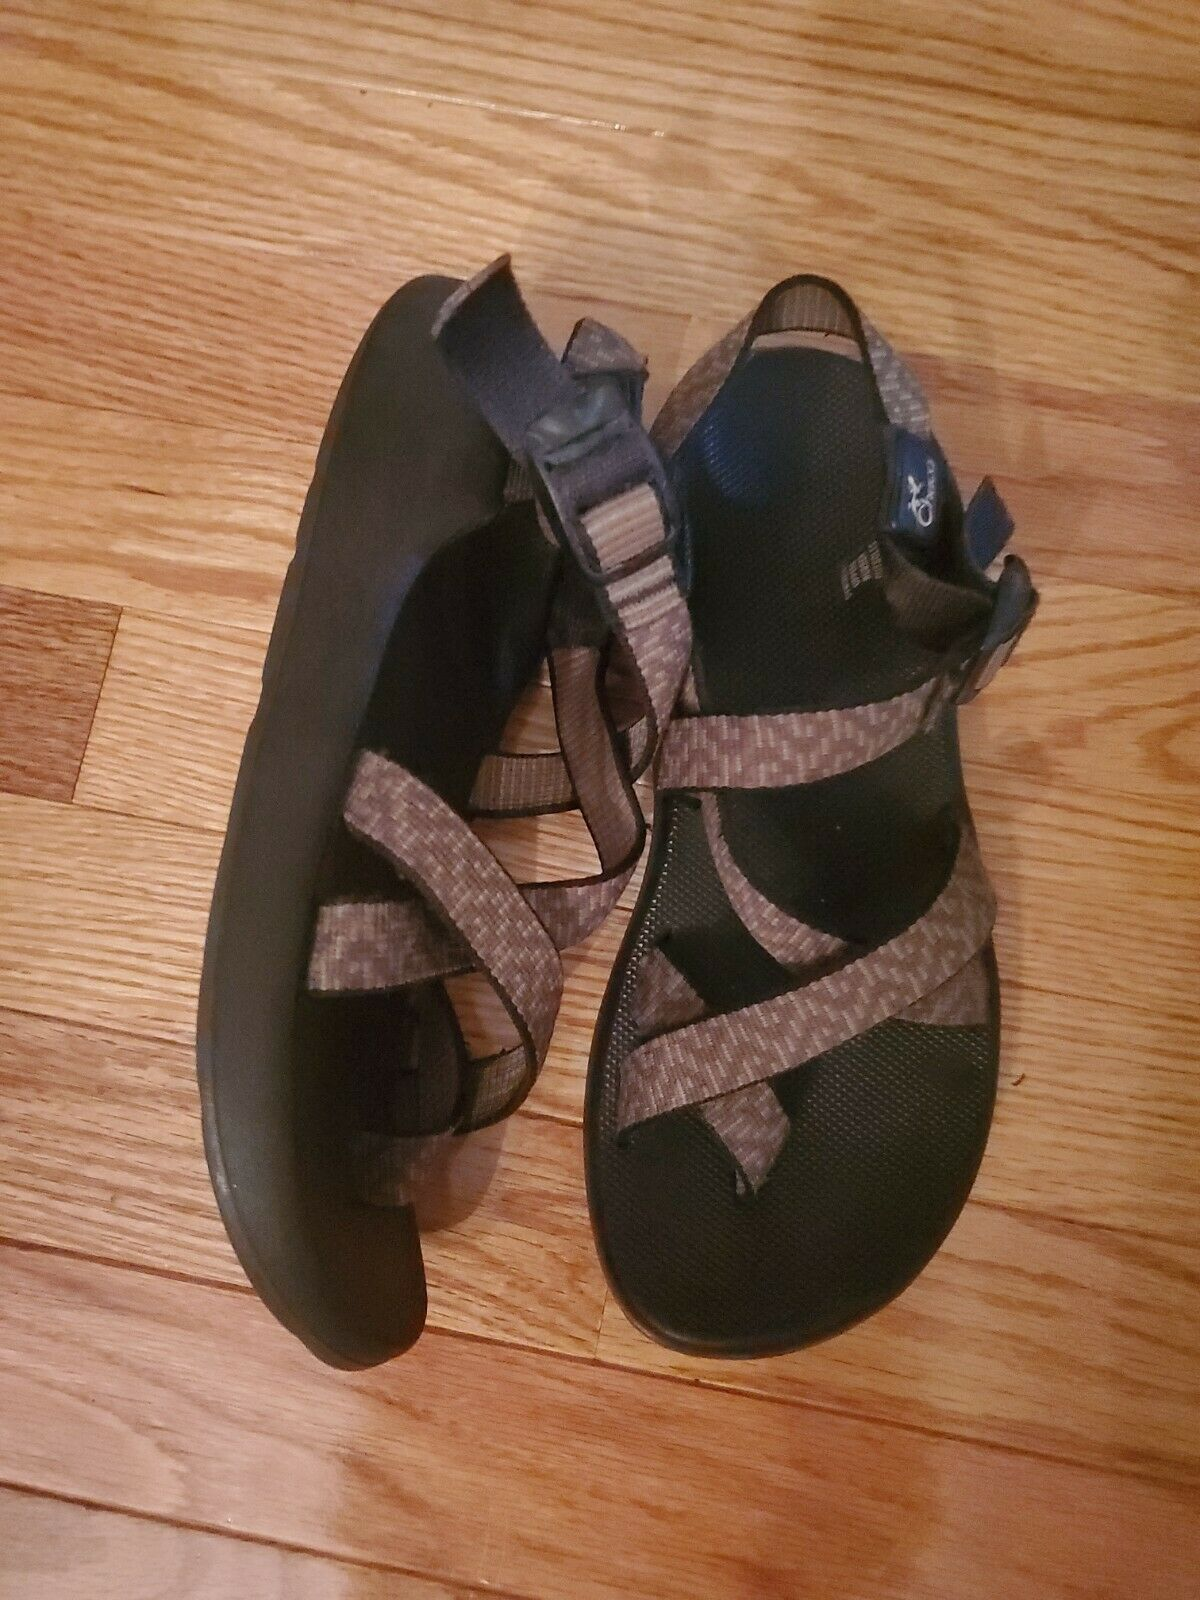 CHACO Women's Size 8 Strappy Sandals - image 3